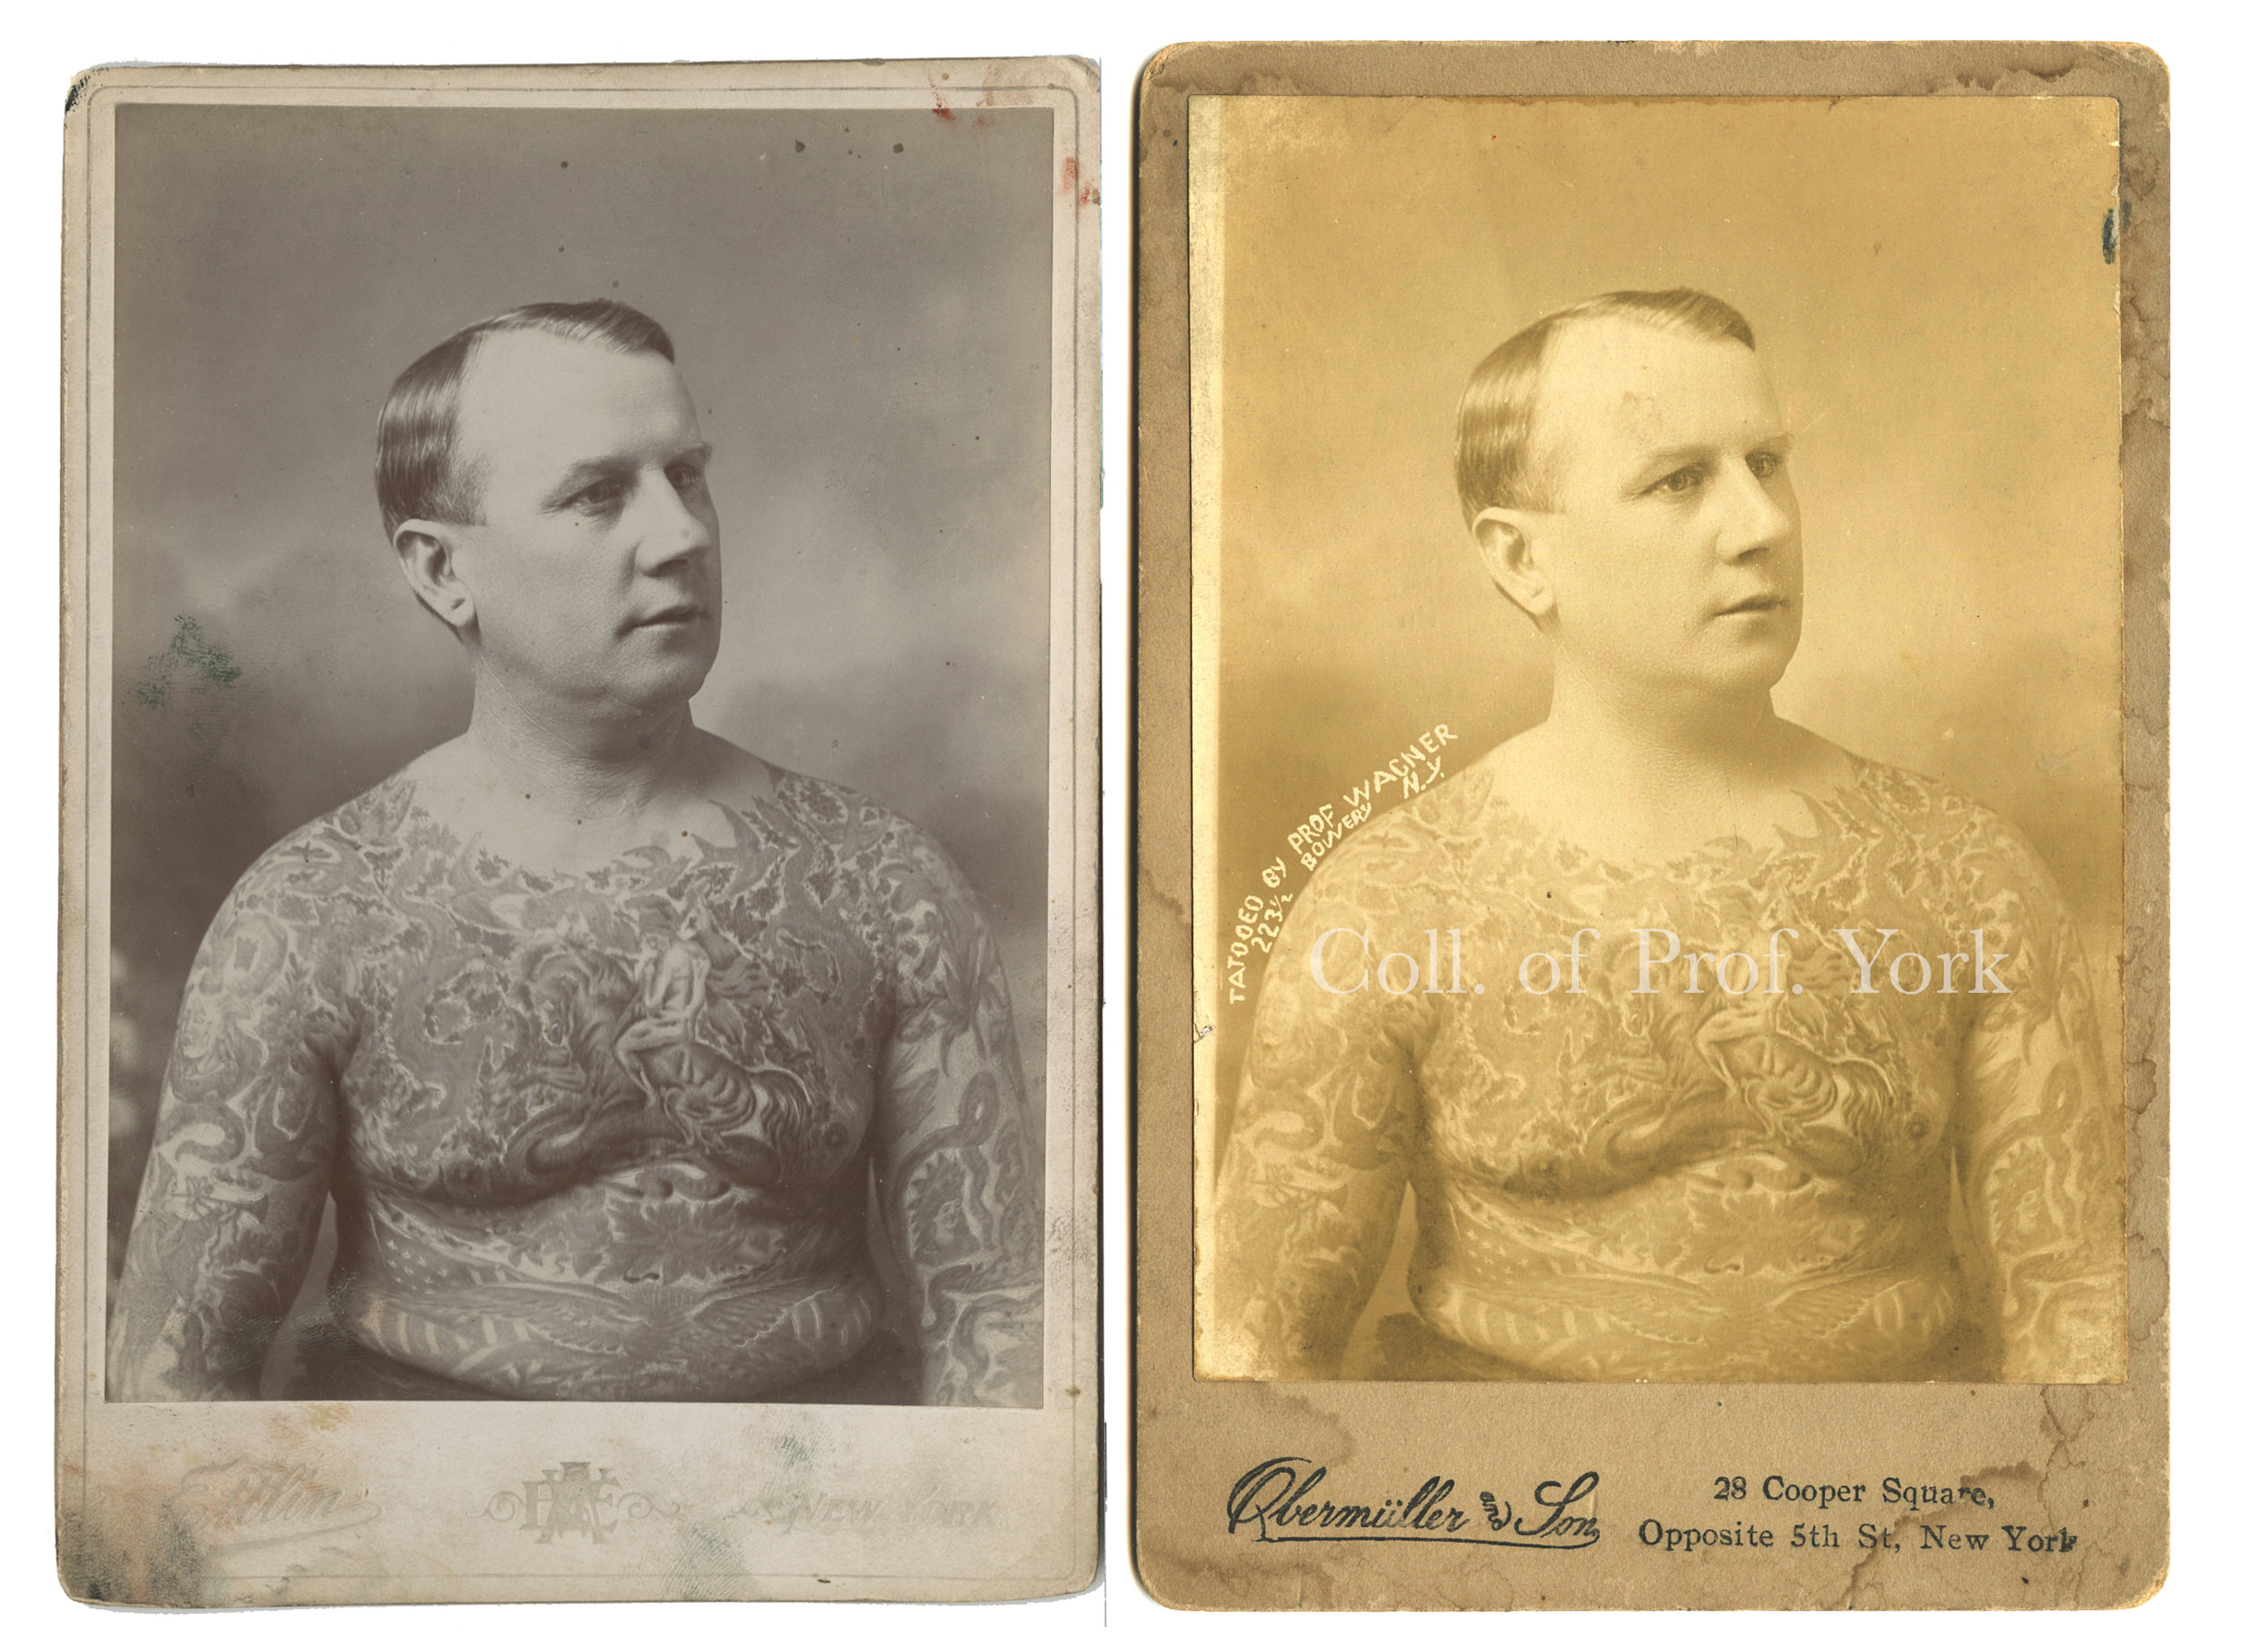 "L) Ed Greenwood, Tattooed by Charlie Wagner and Lew Alberts, Cabinet Card Photograph by William Ettlin, Ettlin's Portraits, 17 Chatham Square, New York, ca. 1903.  Harry Ransom Center, The University of Texas at Austin.  R) ""Tat[t]ooed by Prof. Wagner, 223 1/2 Bowery, N.Y.,"" Cabinet Card Photograph of Ed Greenwood by William Ettlin, Duplicated by Obermuller and Son, 28 Cooper Square, Opposite 5th St, New York, ca. 1905.   Collection of Prof. York"